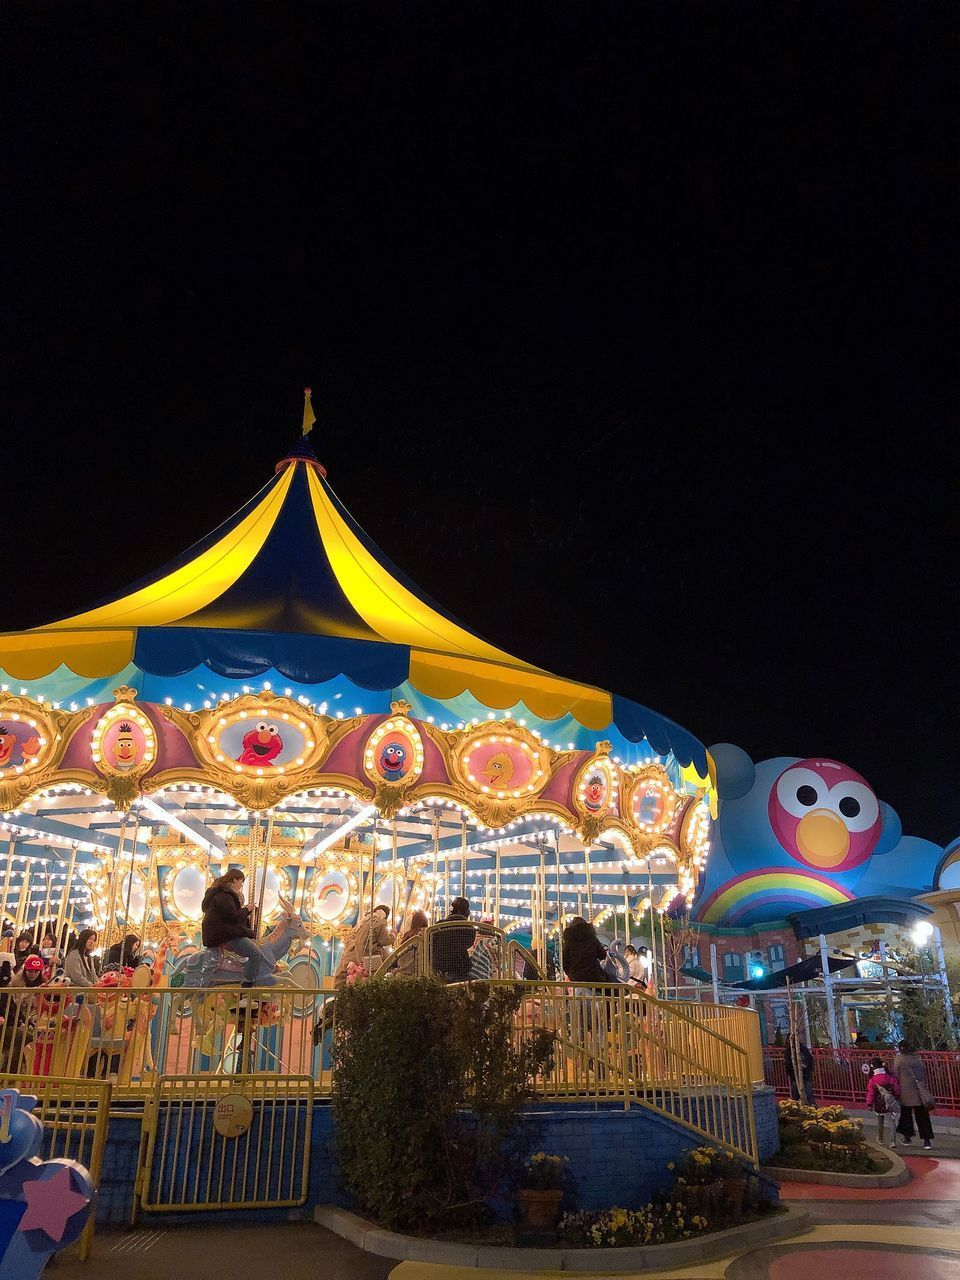 arts culture and entertainment, night, amusement park, amusement park ride, carousel, illuminated, sky, representation, animal representation, incidental people, copy space, built structure, architecture, lighting equipment, outdoors, carousel horses, nature, glowing, merry-go-round, fairground